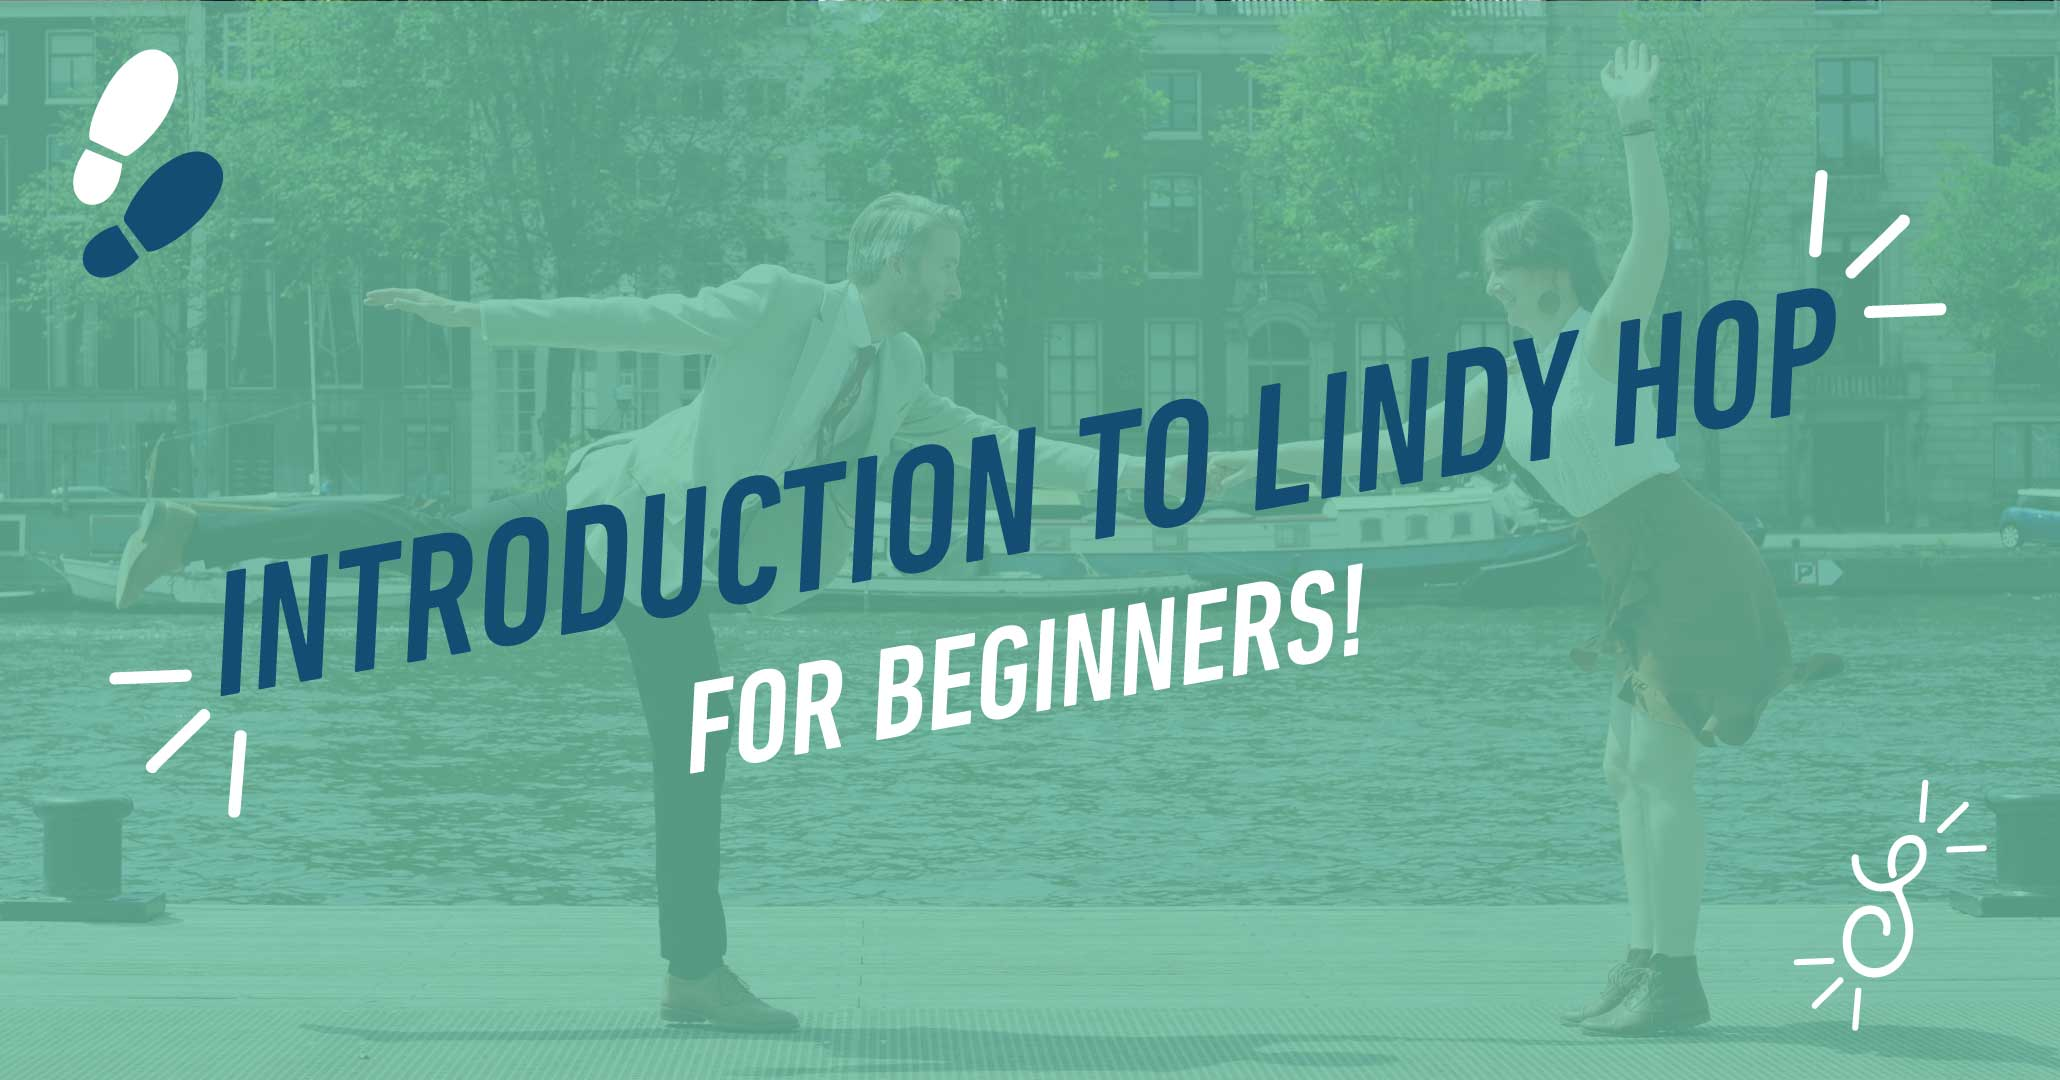 Introduction to Lindy Hop